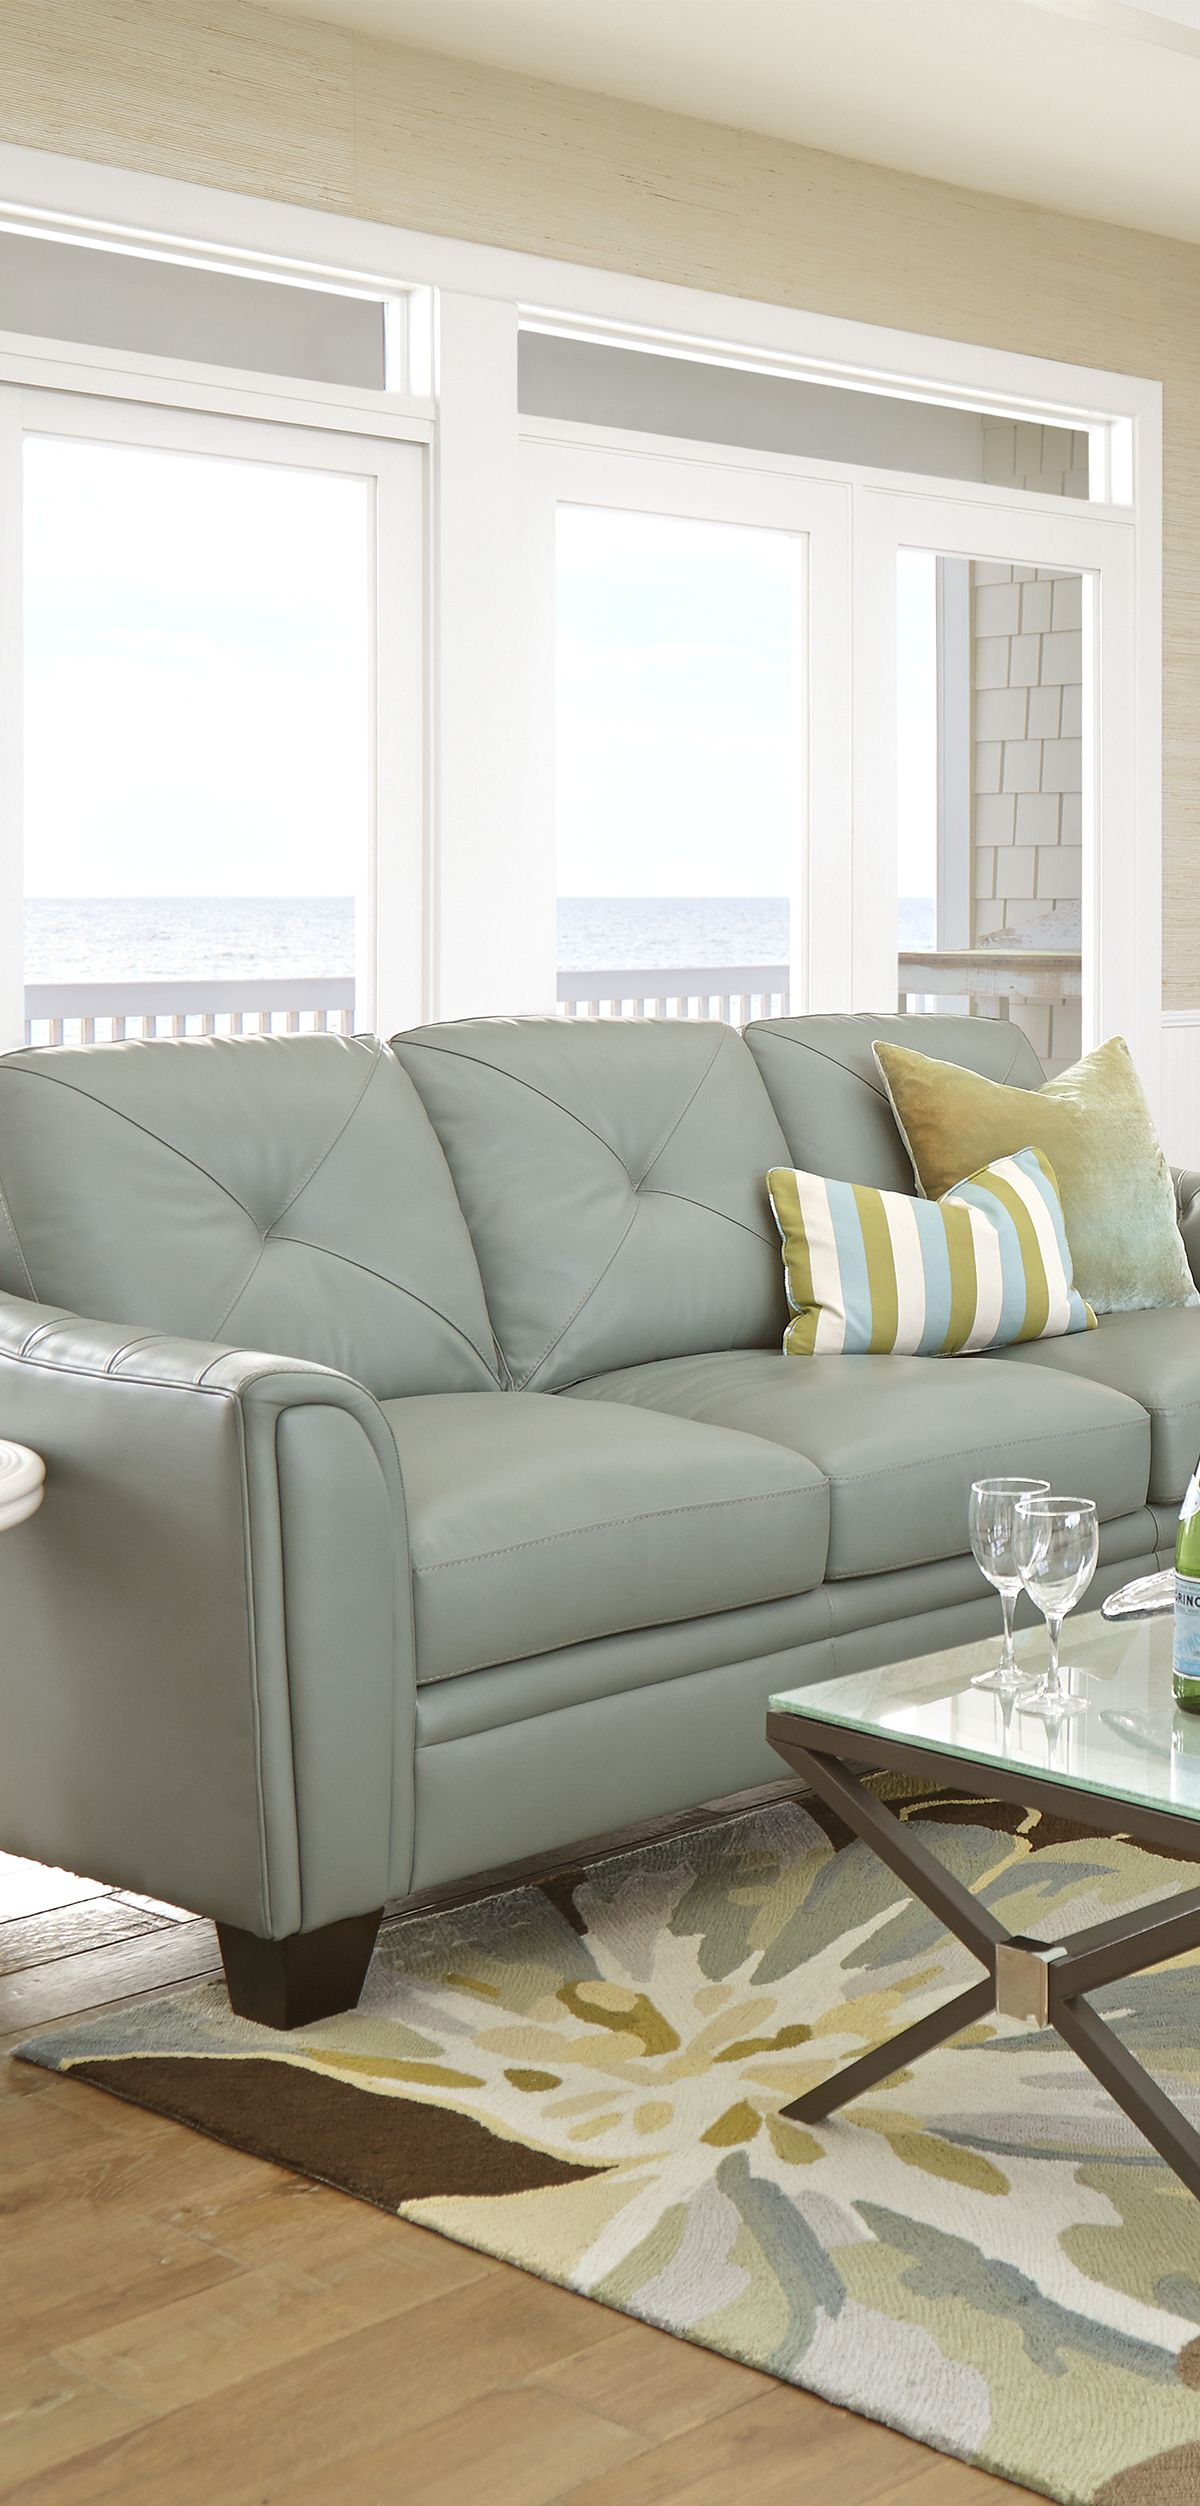 cindy crawford light blue sofa small sleeper sofas for spaces home marcella spa leather 3 pc living